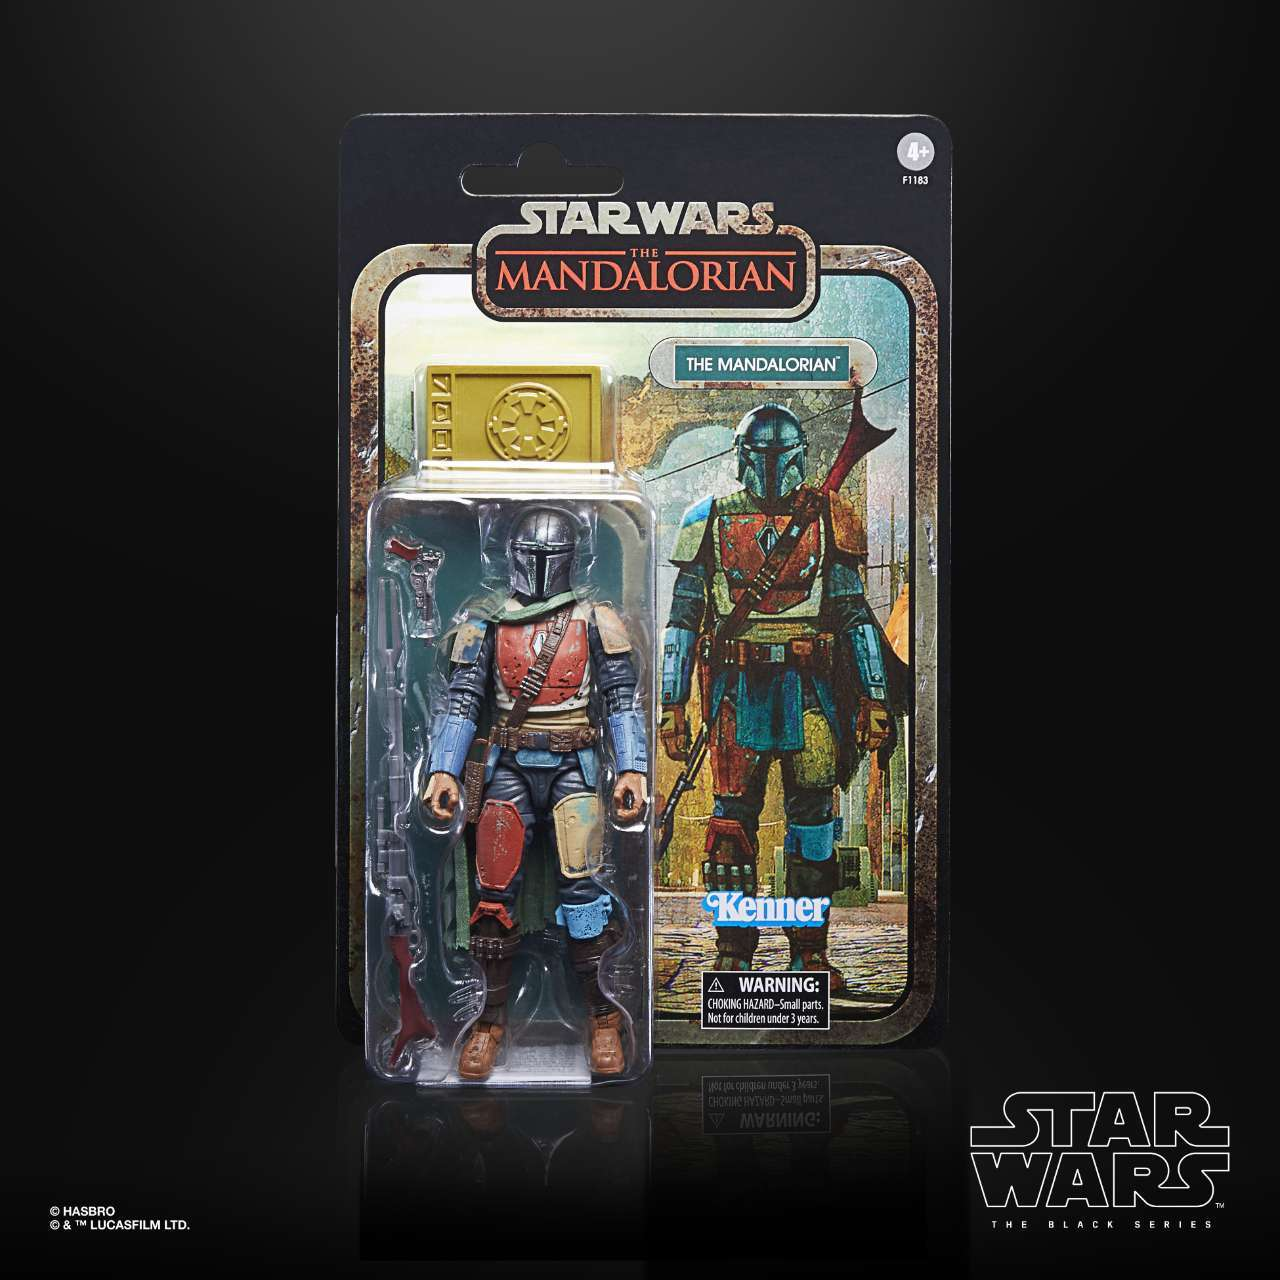 STAR WARS THE BLACK SERIES CREDIT COLLECTION 6-INCH THE MANDALORIAN Figure - inpck